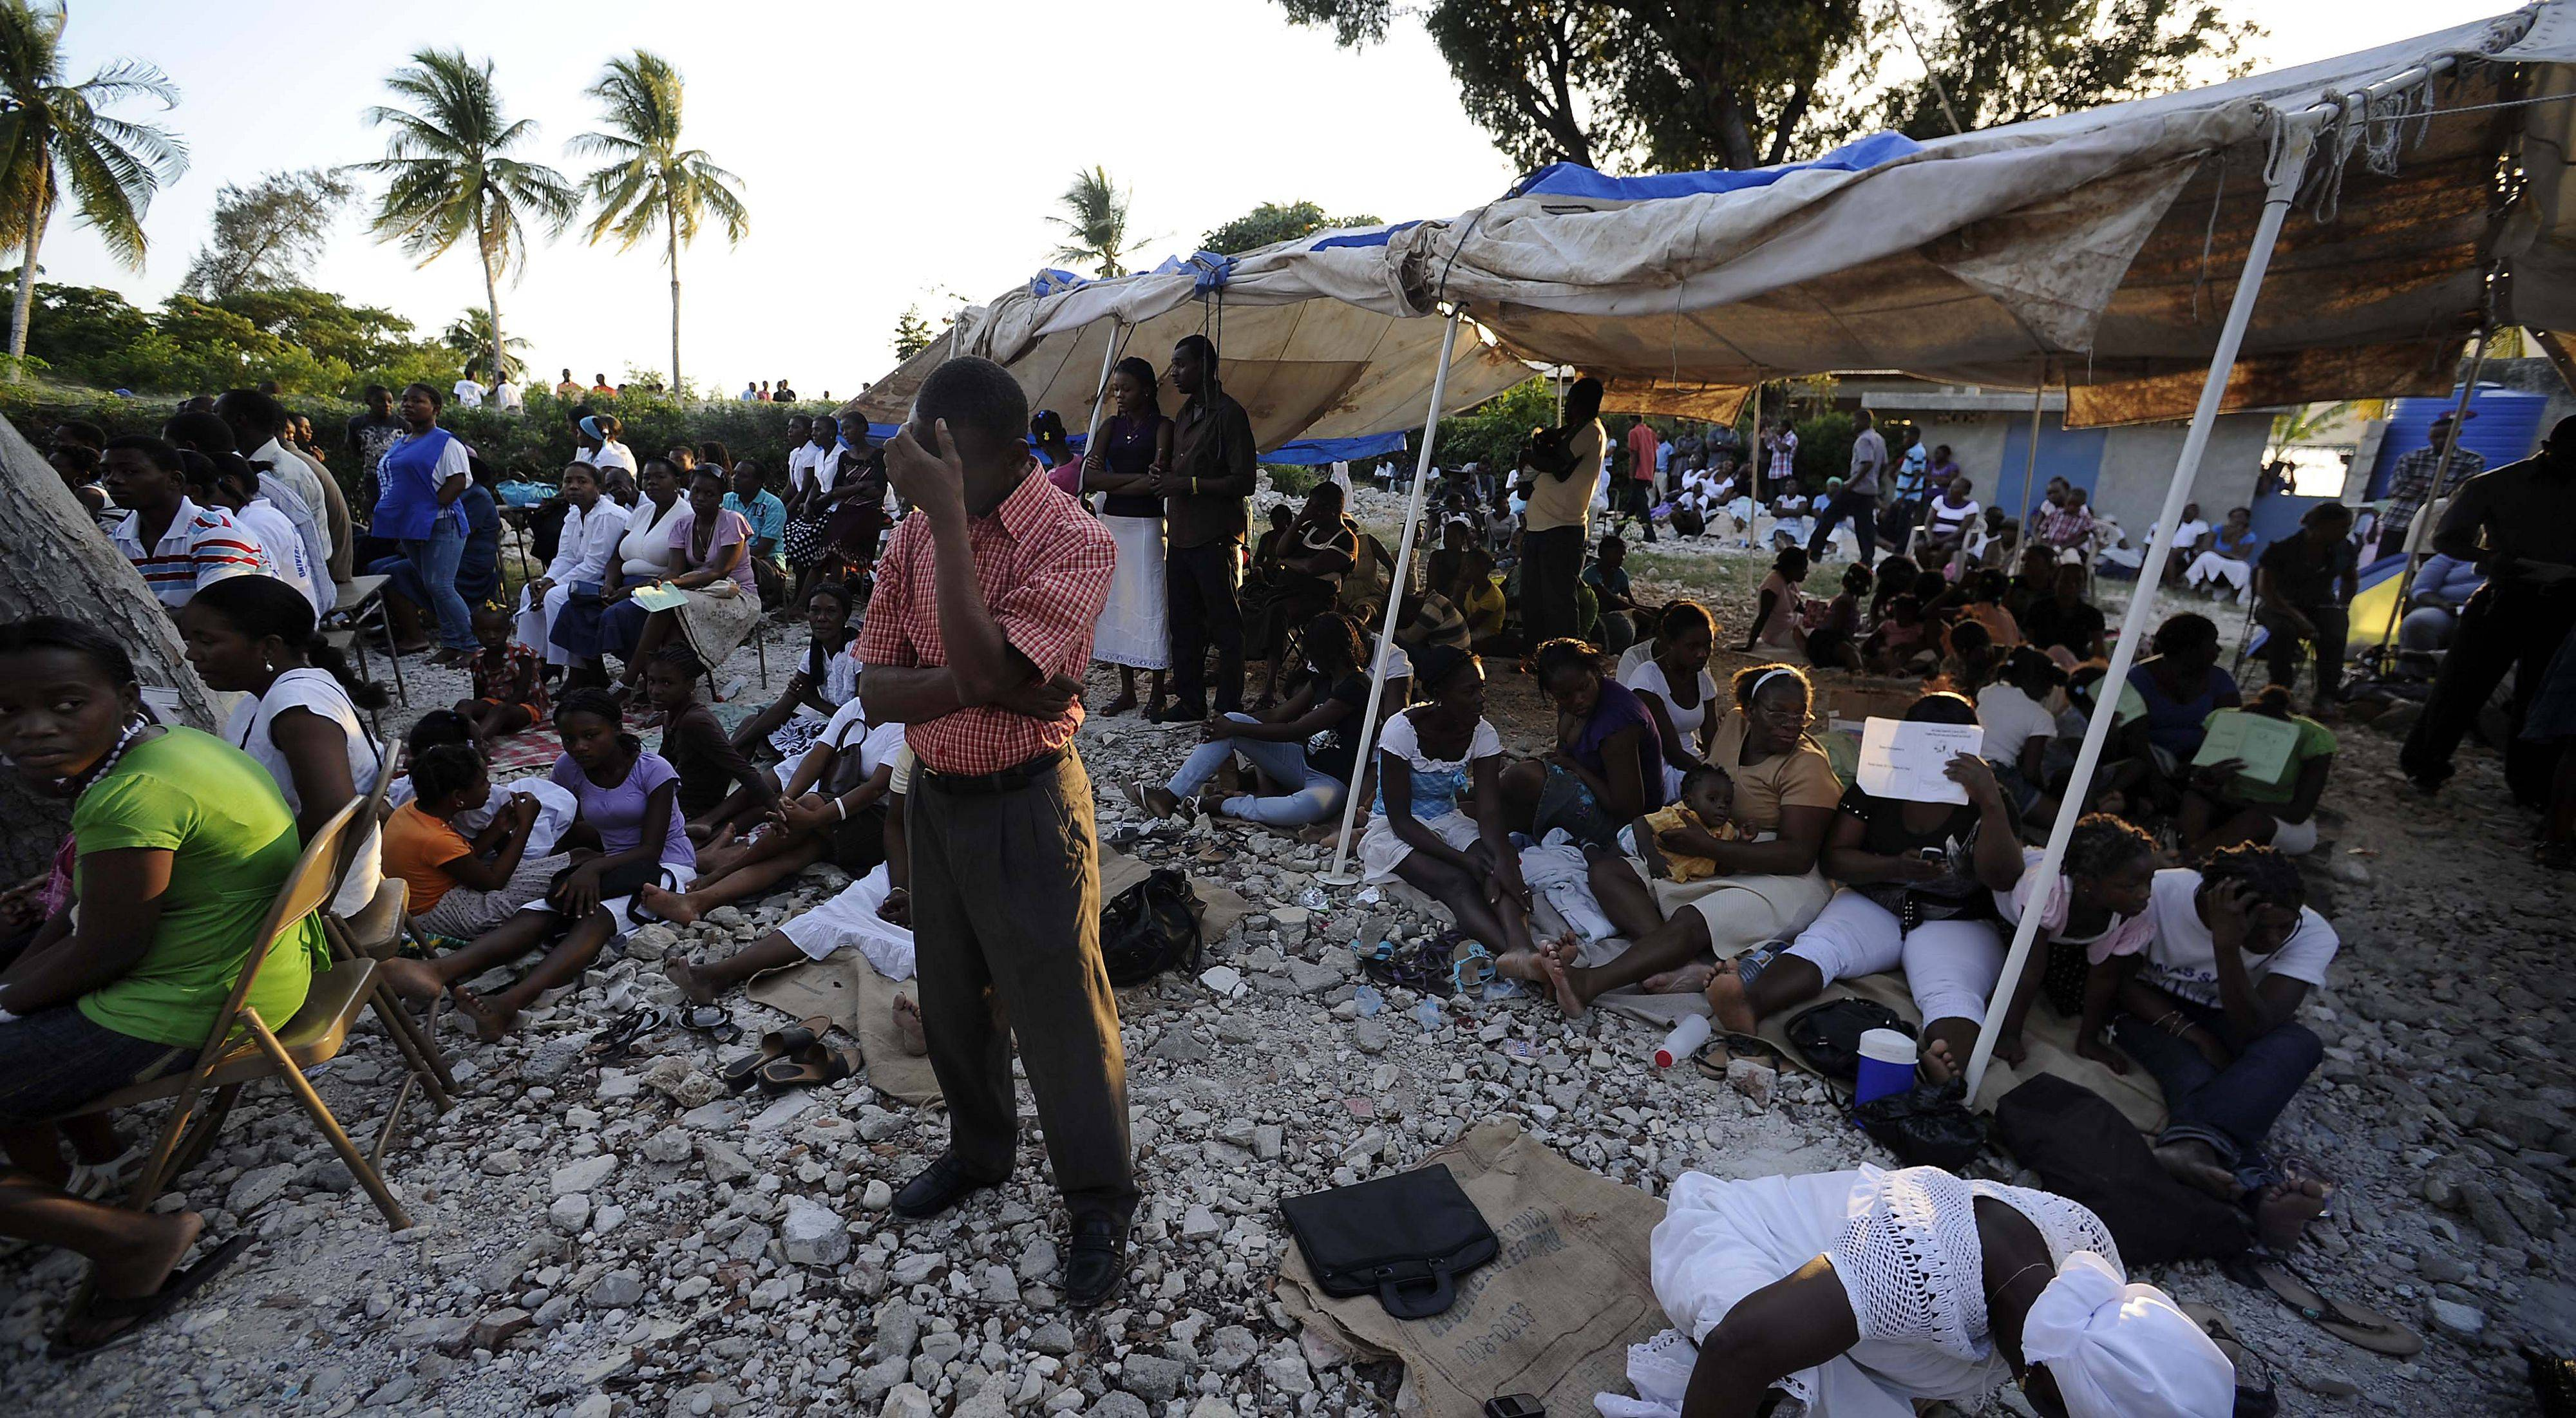 Praying in the middle of over a thousand Catholic worshipers, a Haitian man observes the one year anniversary of the earthquake that killed over 300,000 people.